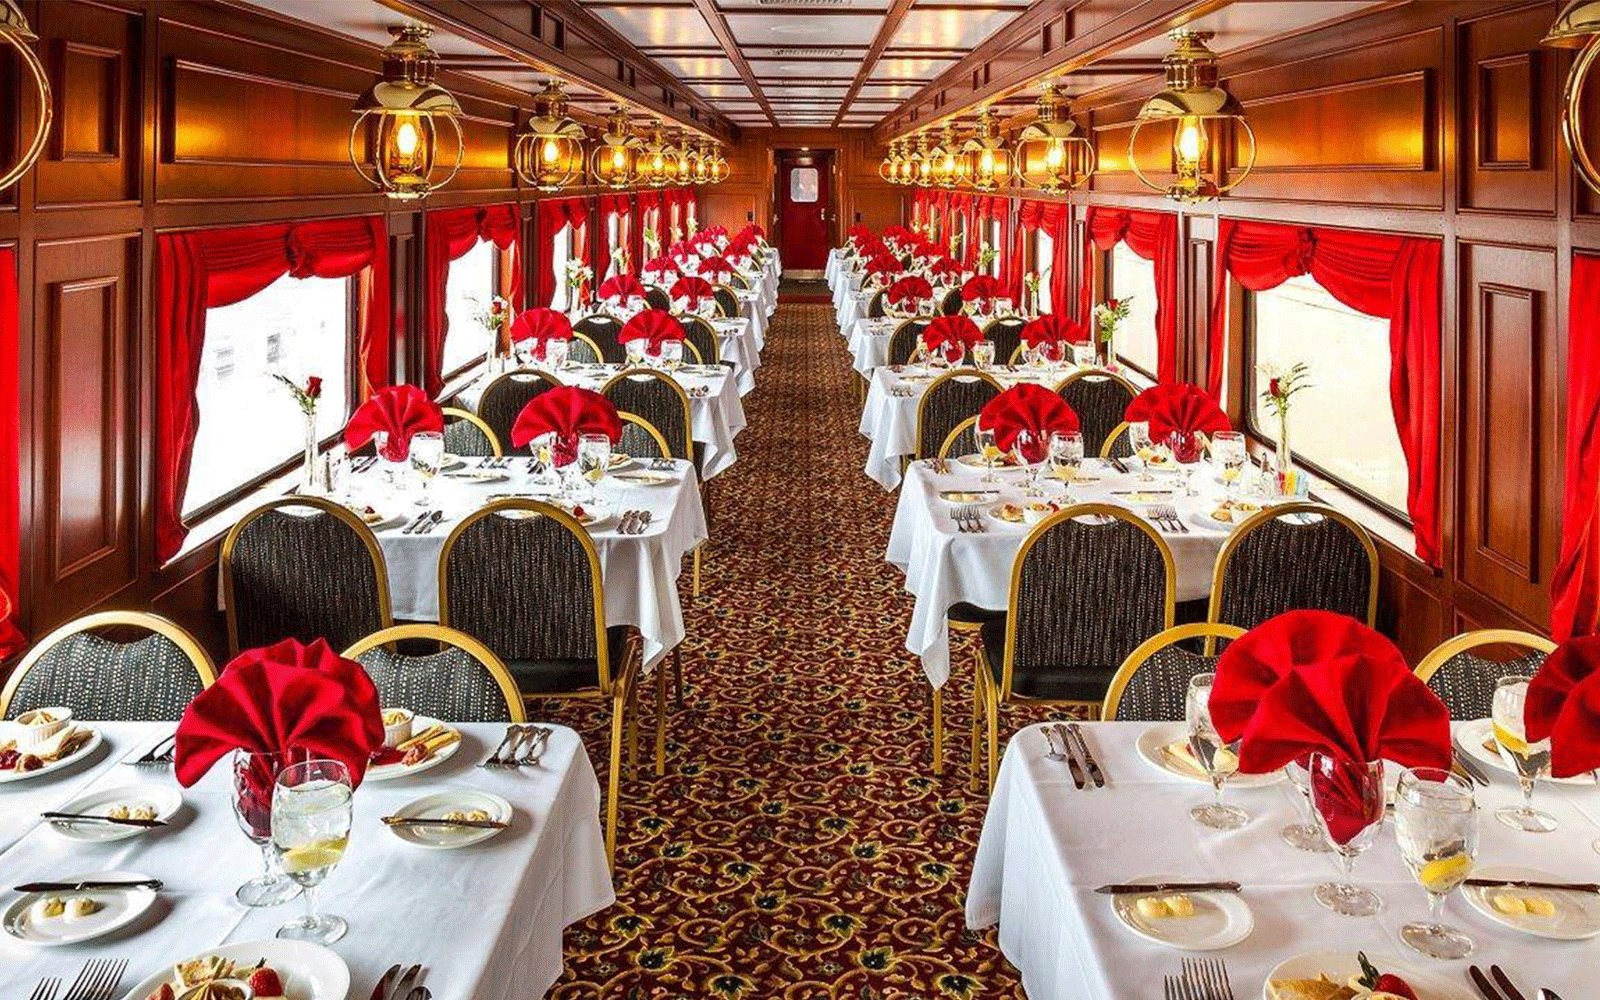 This Vintage Train Car Takes You Through the Kentucky Countryside and Is Decked Out in 1940s Glamour